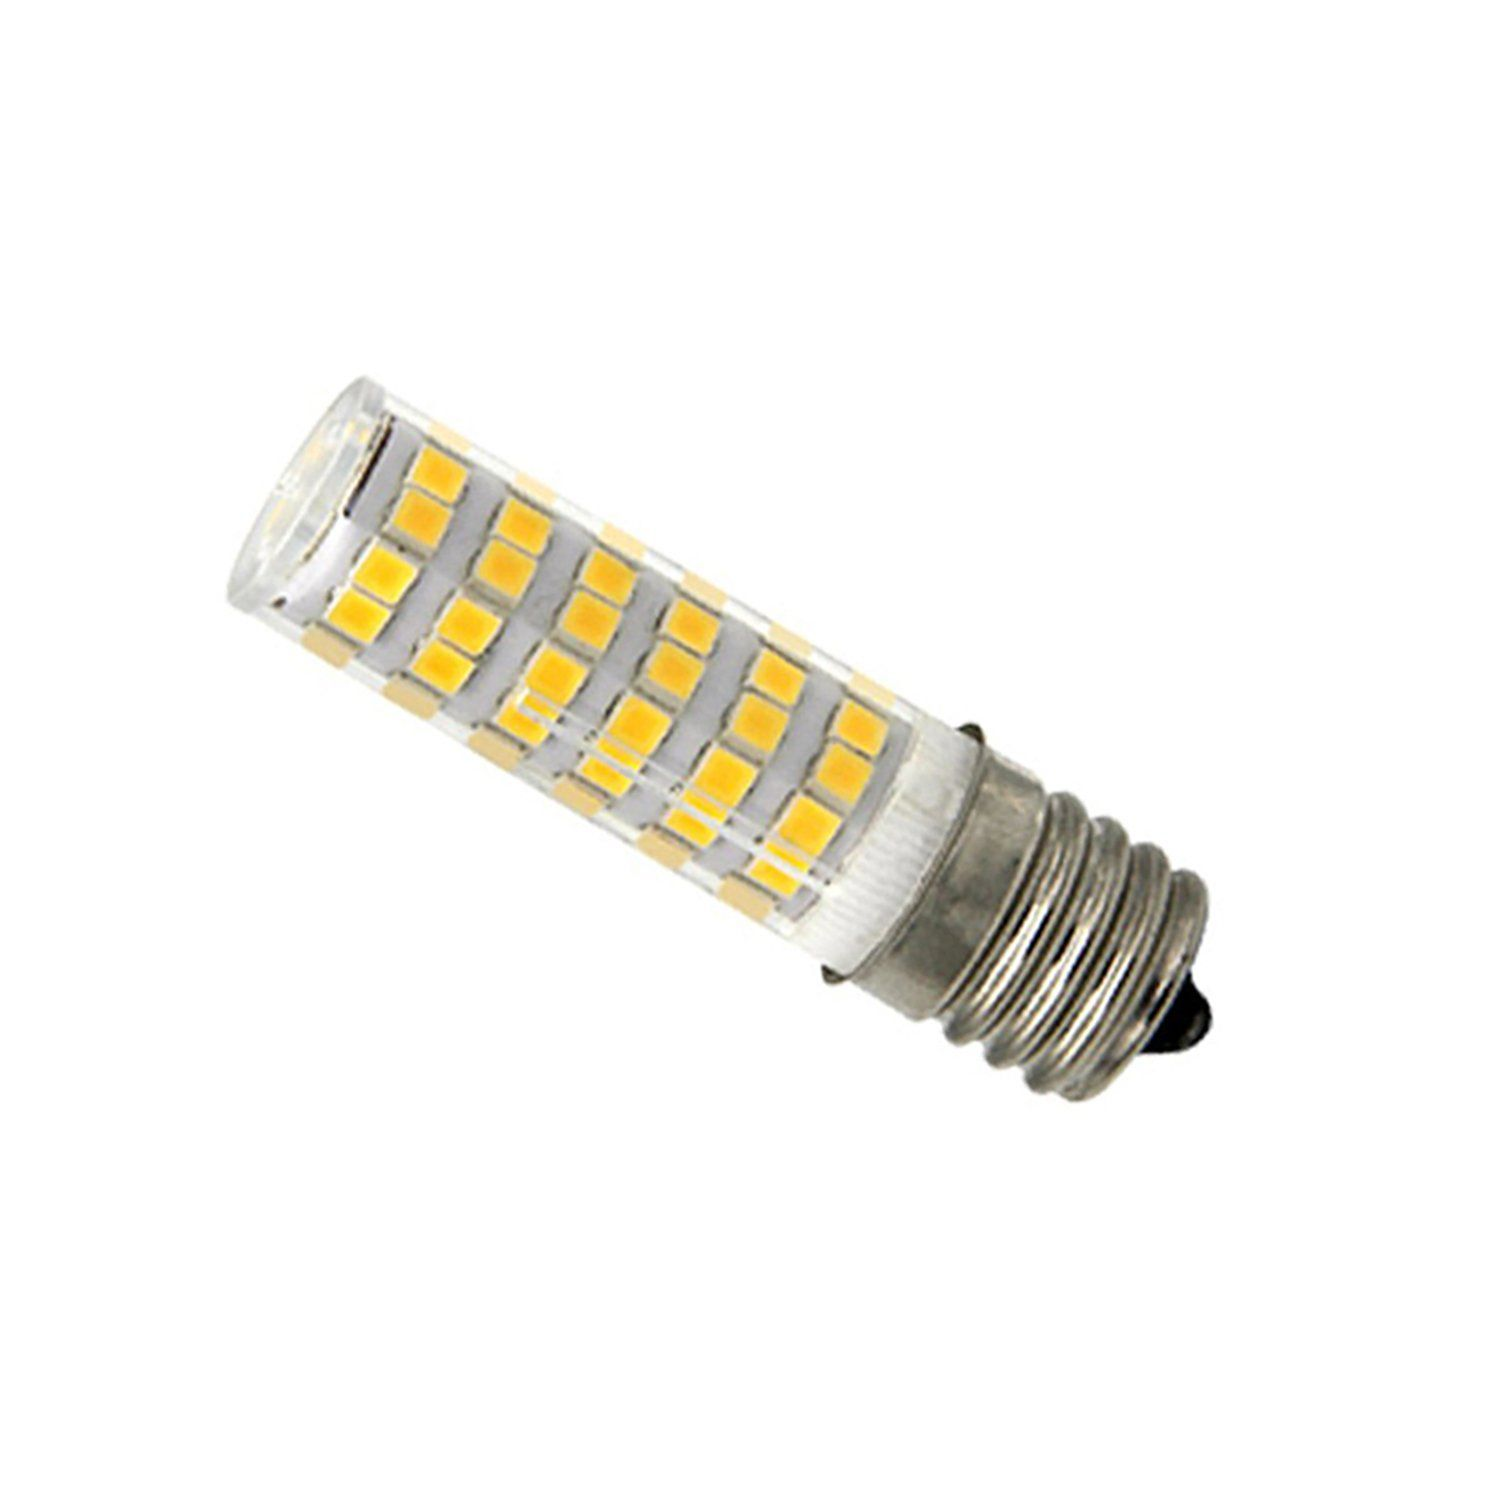 Ceramic E17 Led Bulb For Microwave Oven Appliance 5w 120v T8 T7 E17 Intermediate Base Led Bulb